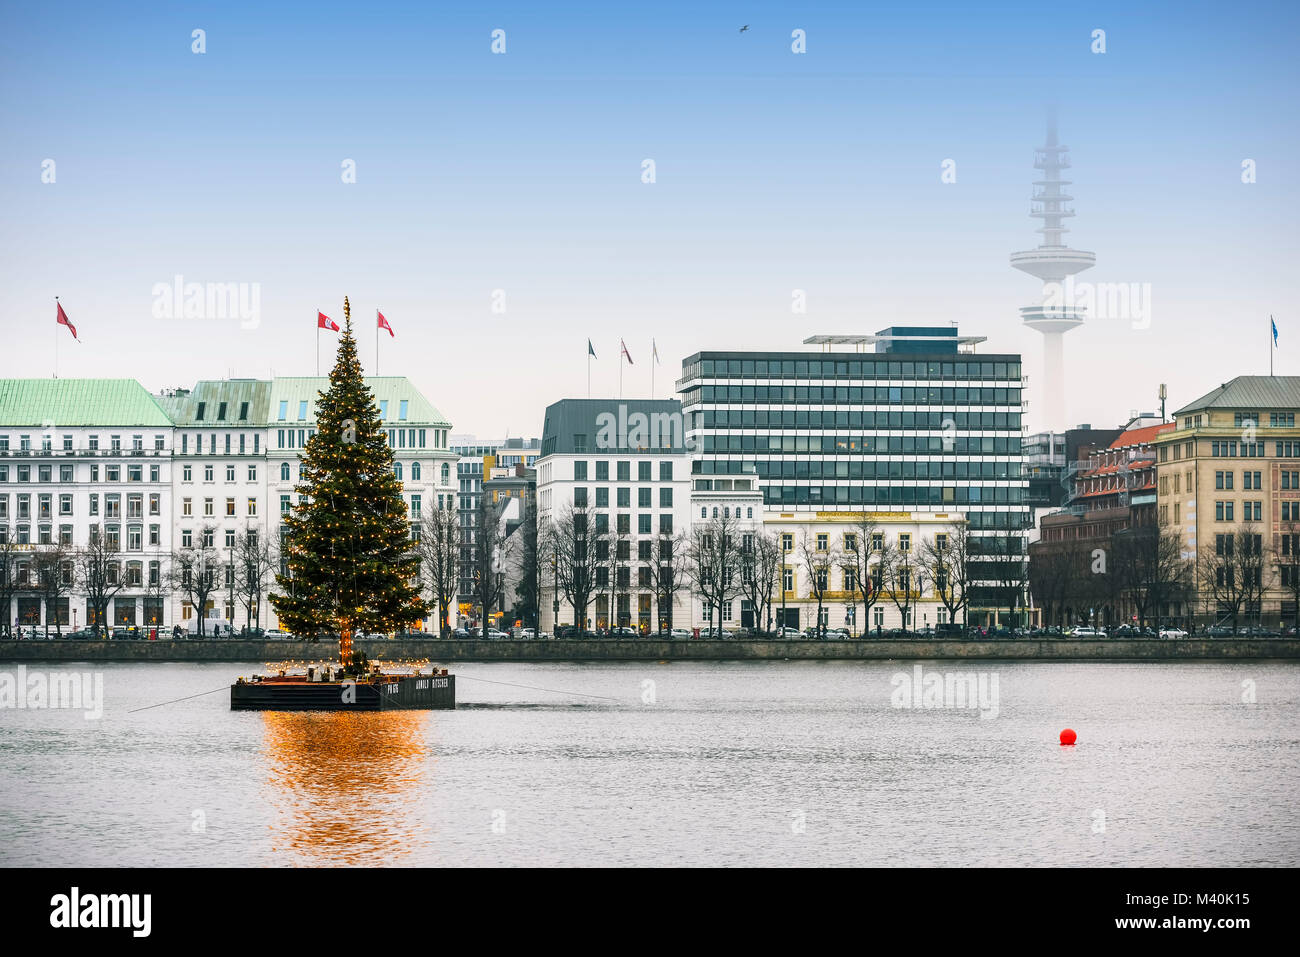 On the Inner Alster Lake Alster fir at Christmas time in Hamburg, Germany, Europe, Alstertanne zur Weihnachtszeit - Stock Image